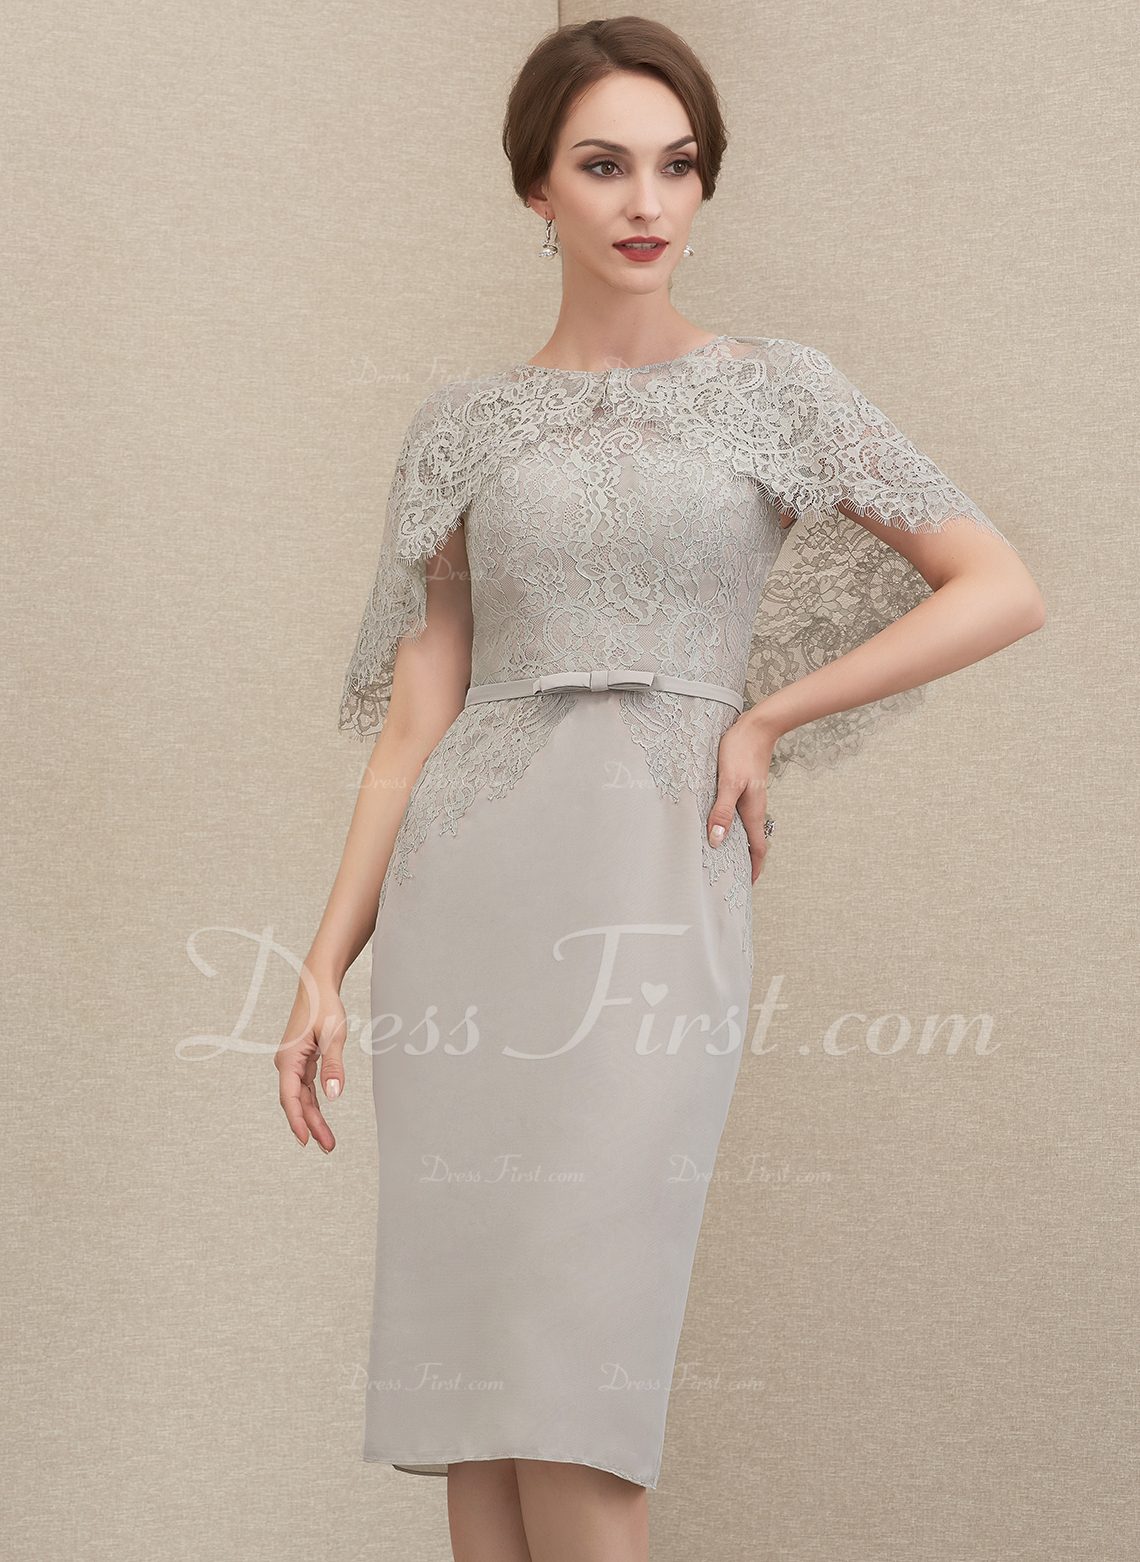 Sheath/Column Scoop Neck Knee-Length Chiffon Lace Mother of the Bride Dress With Bow(s)